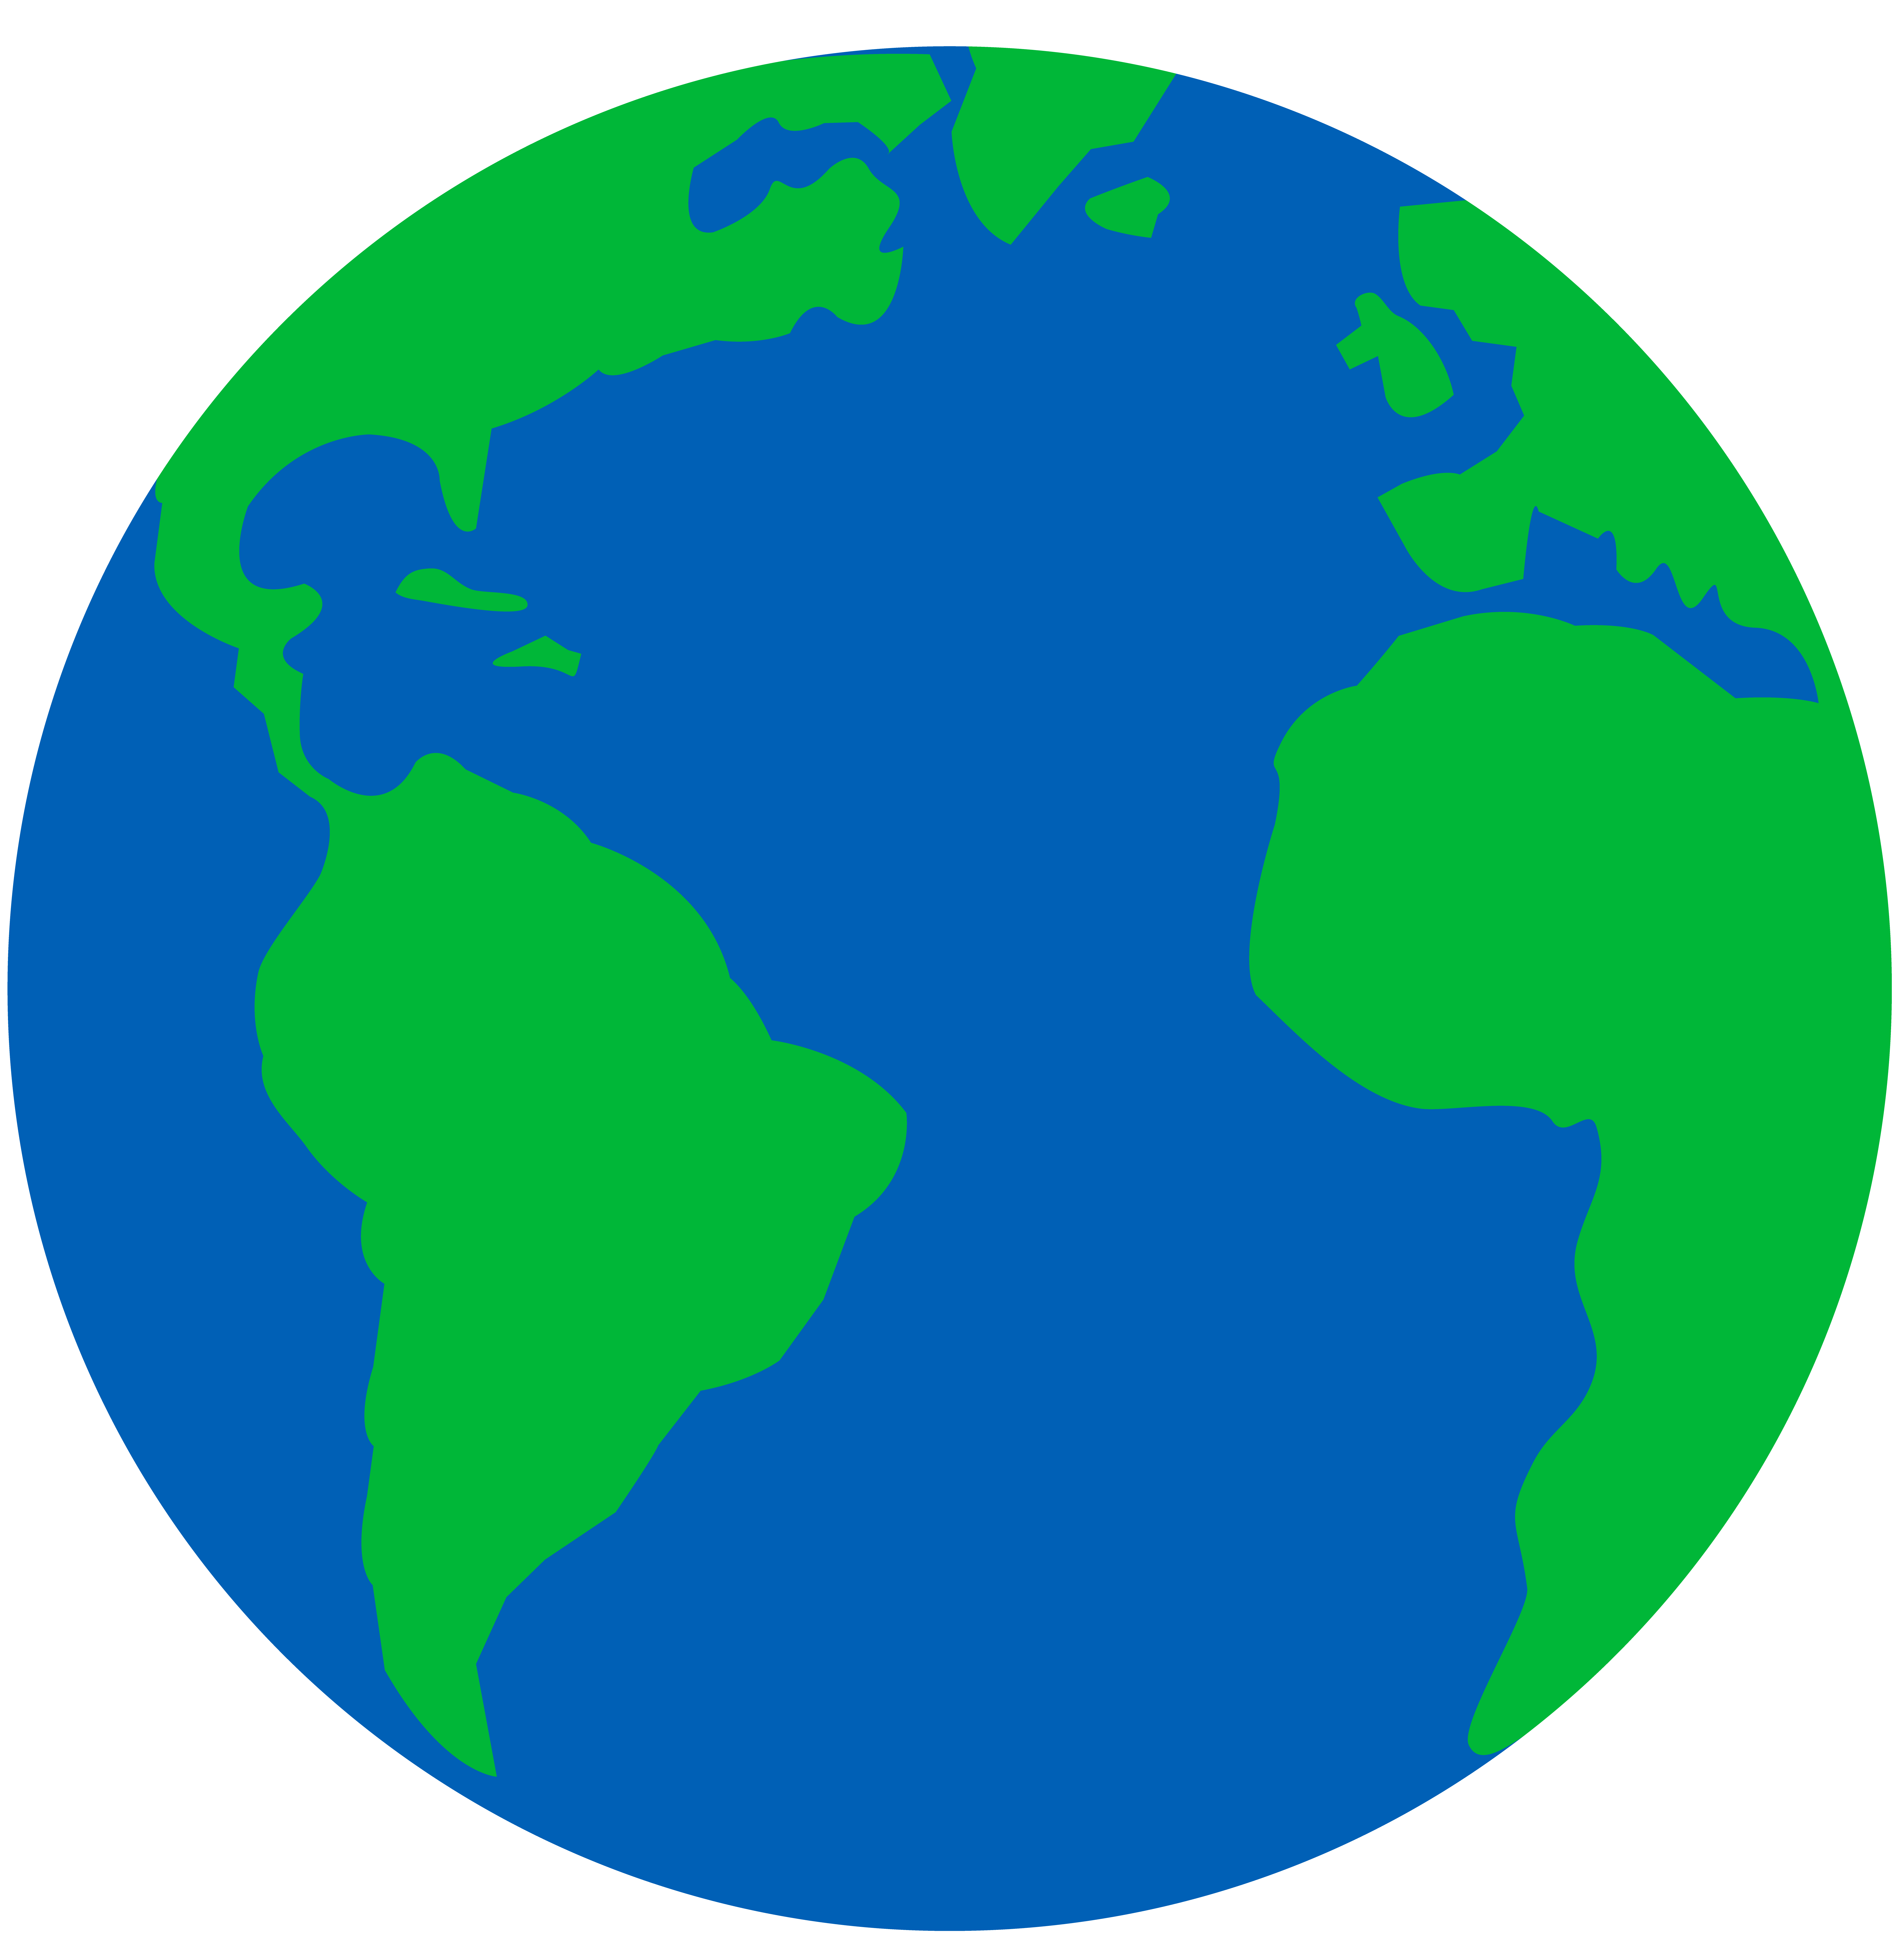 7647x7814 Simple Planet Earth Design